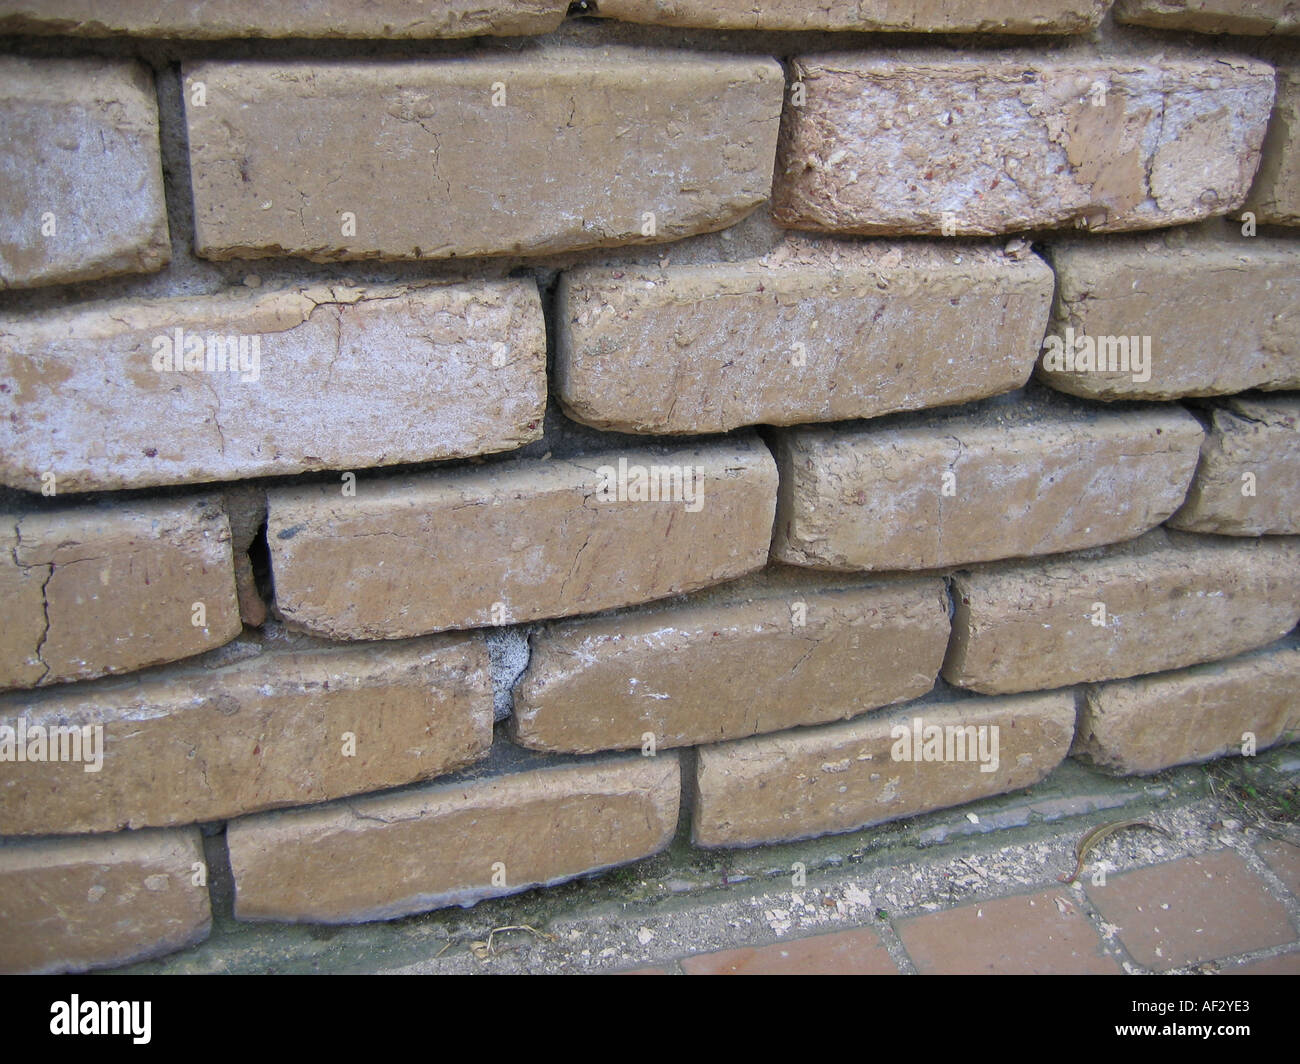 Salinity salt affected bricks with lost mortar - Stock Image